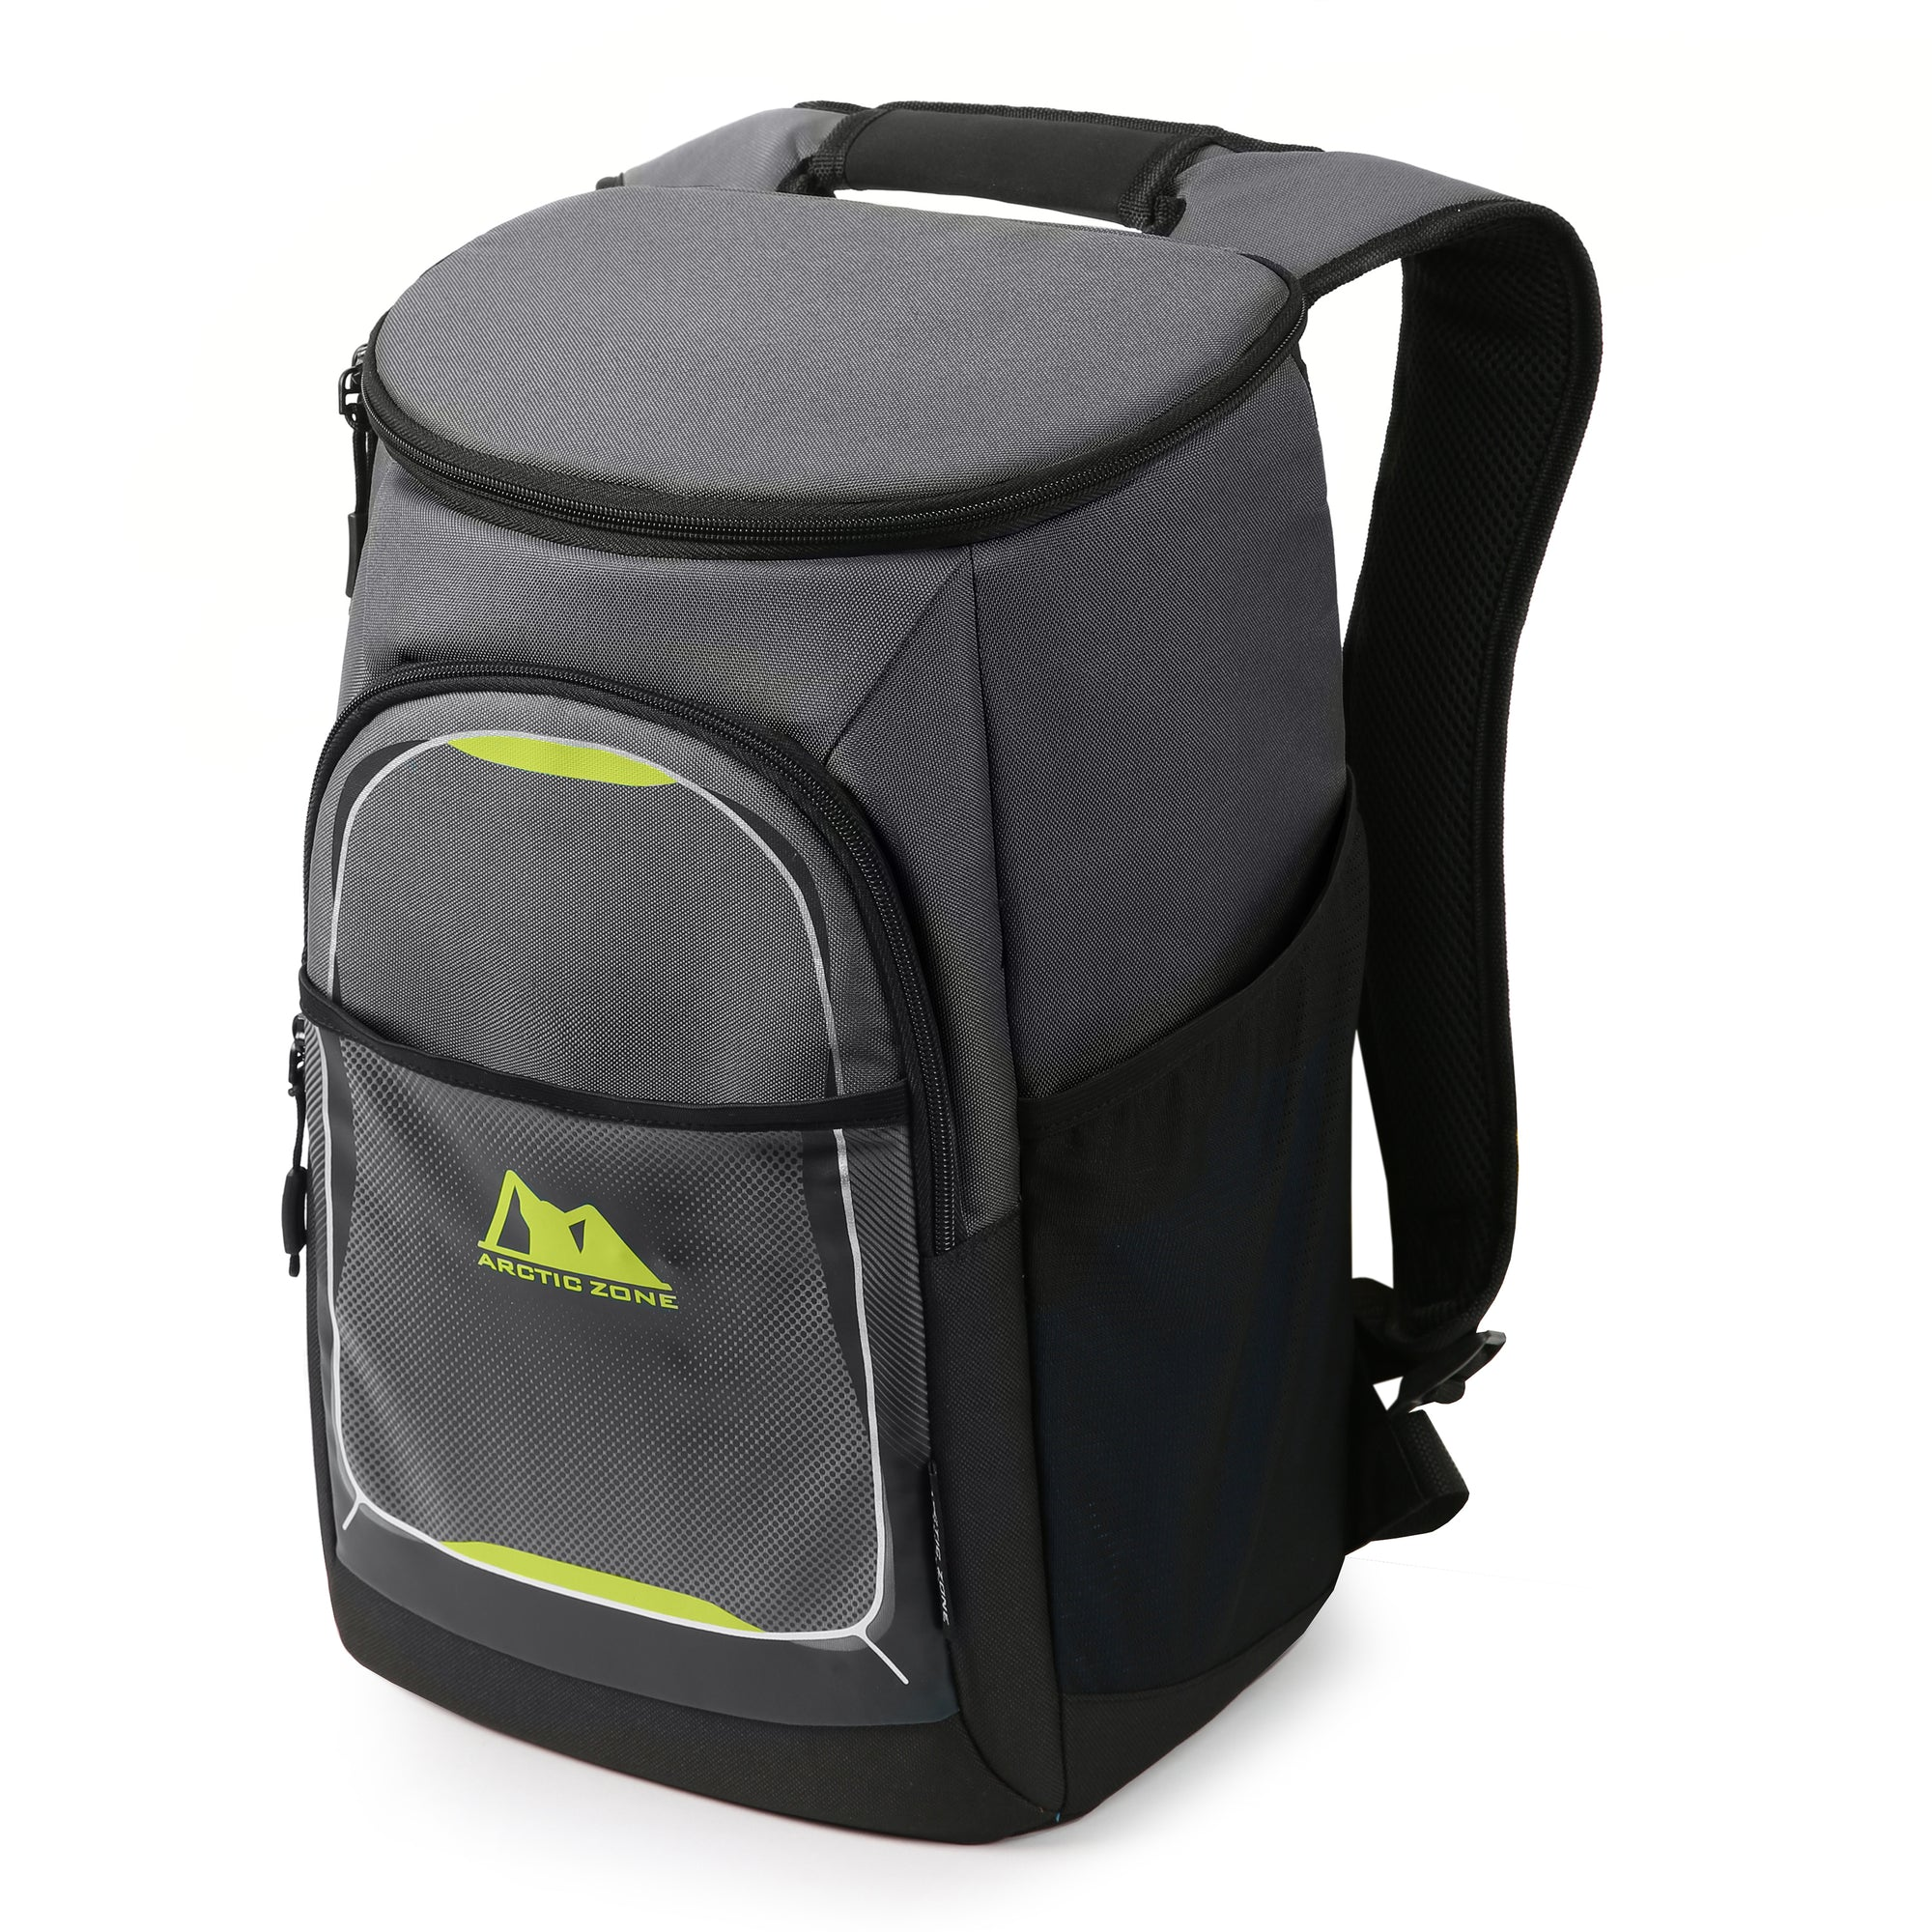 LAKE /& TRAIL 24 CAN LARGE DUFFEL COOLER GREEN//GRAY